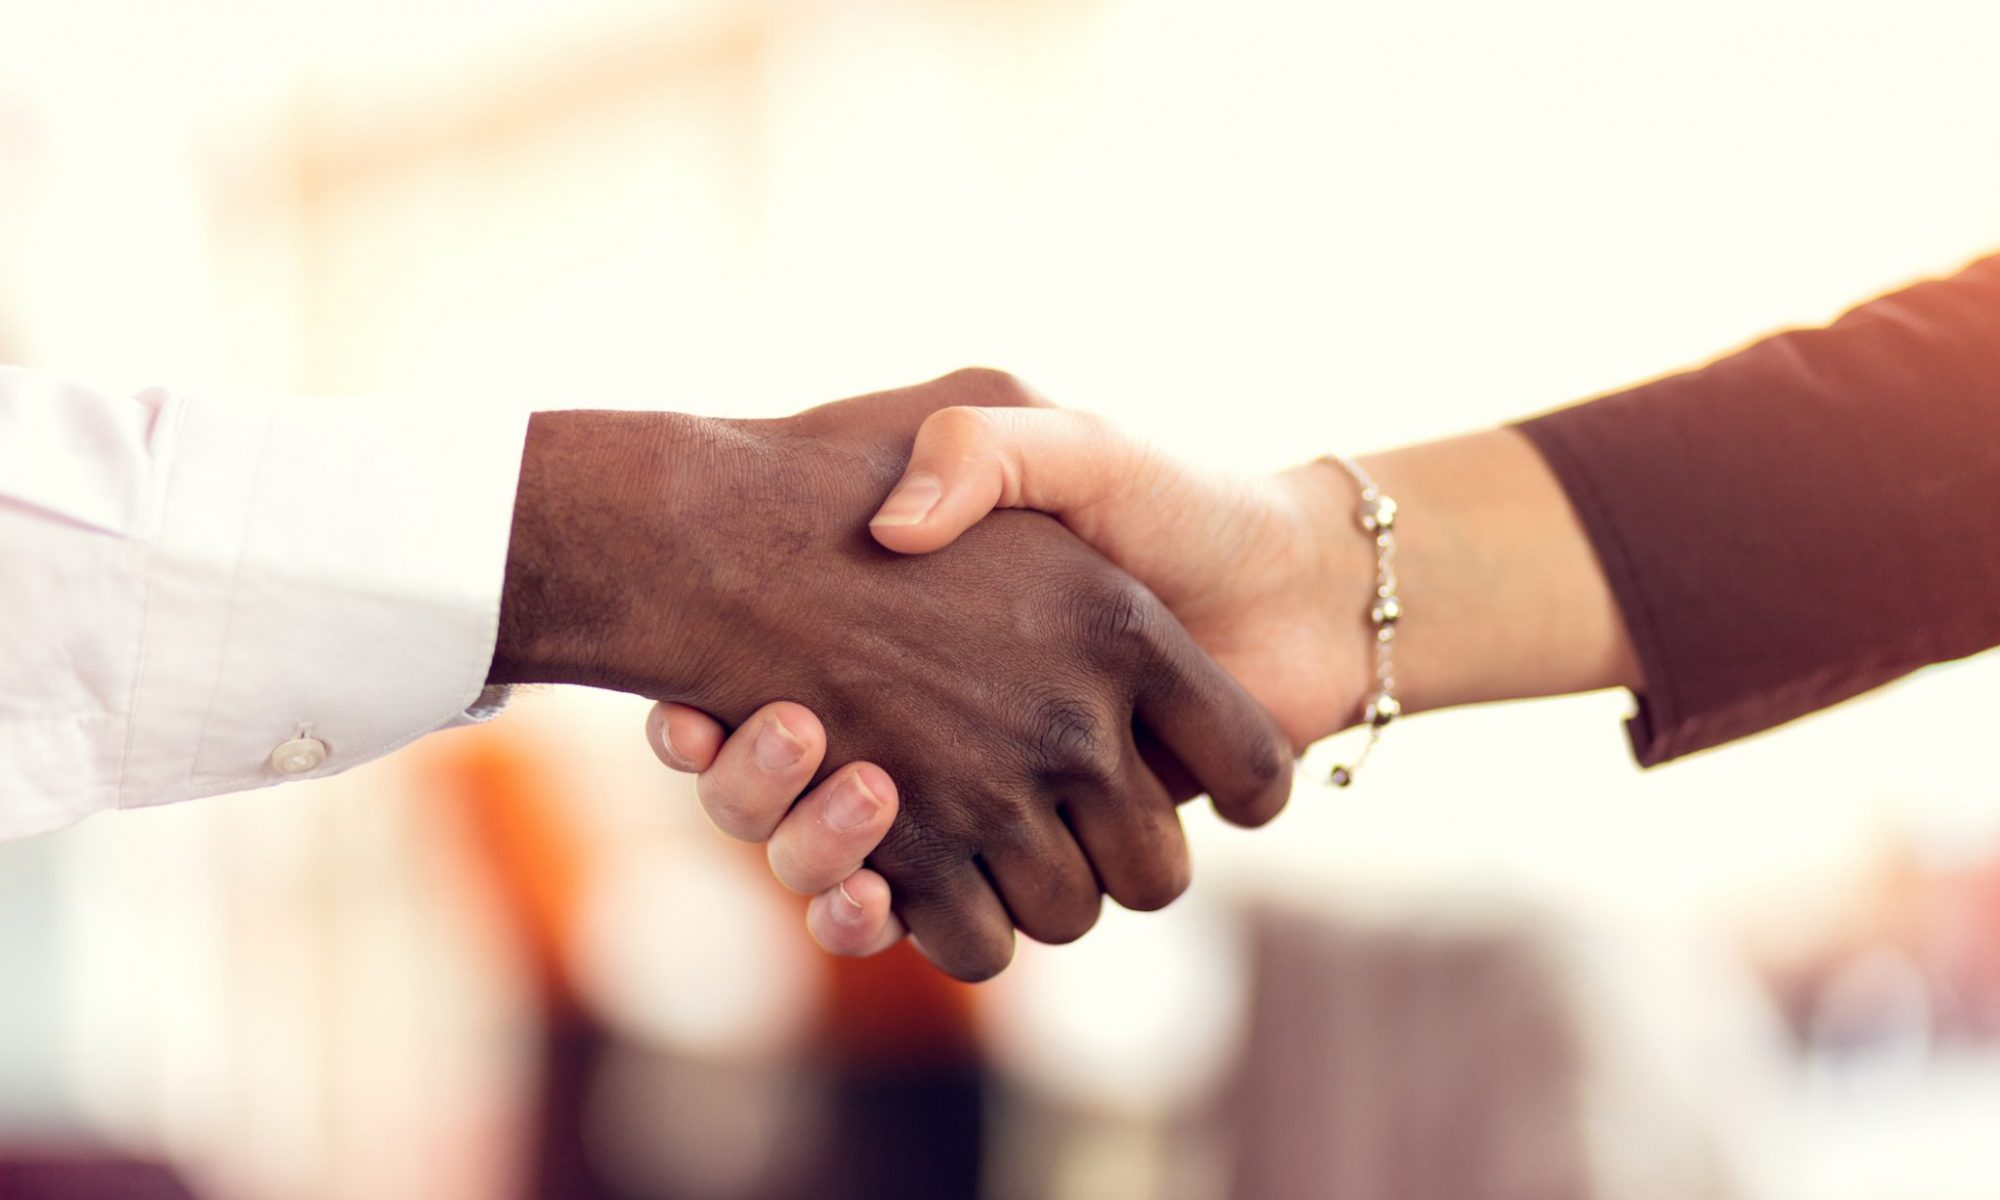 Two diverse hands are shaking. One hand has a long white sleeve, and the other has a silver bracelet with a black shirt sleeve—Symbolic to partnerships and diversity. Business Impact article on Strategic Business School partnerships.